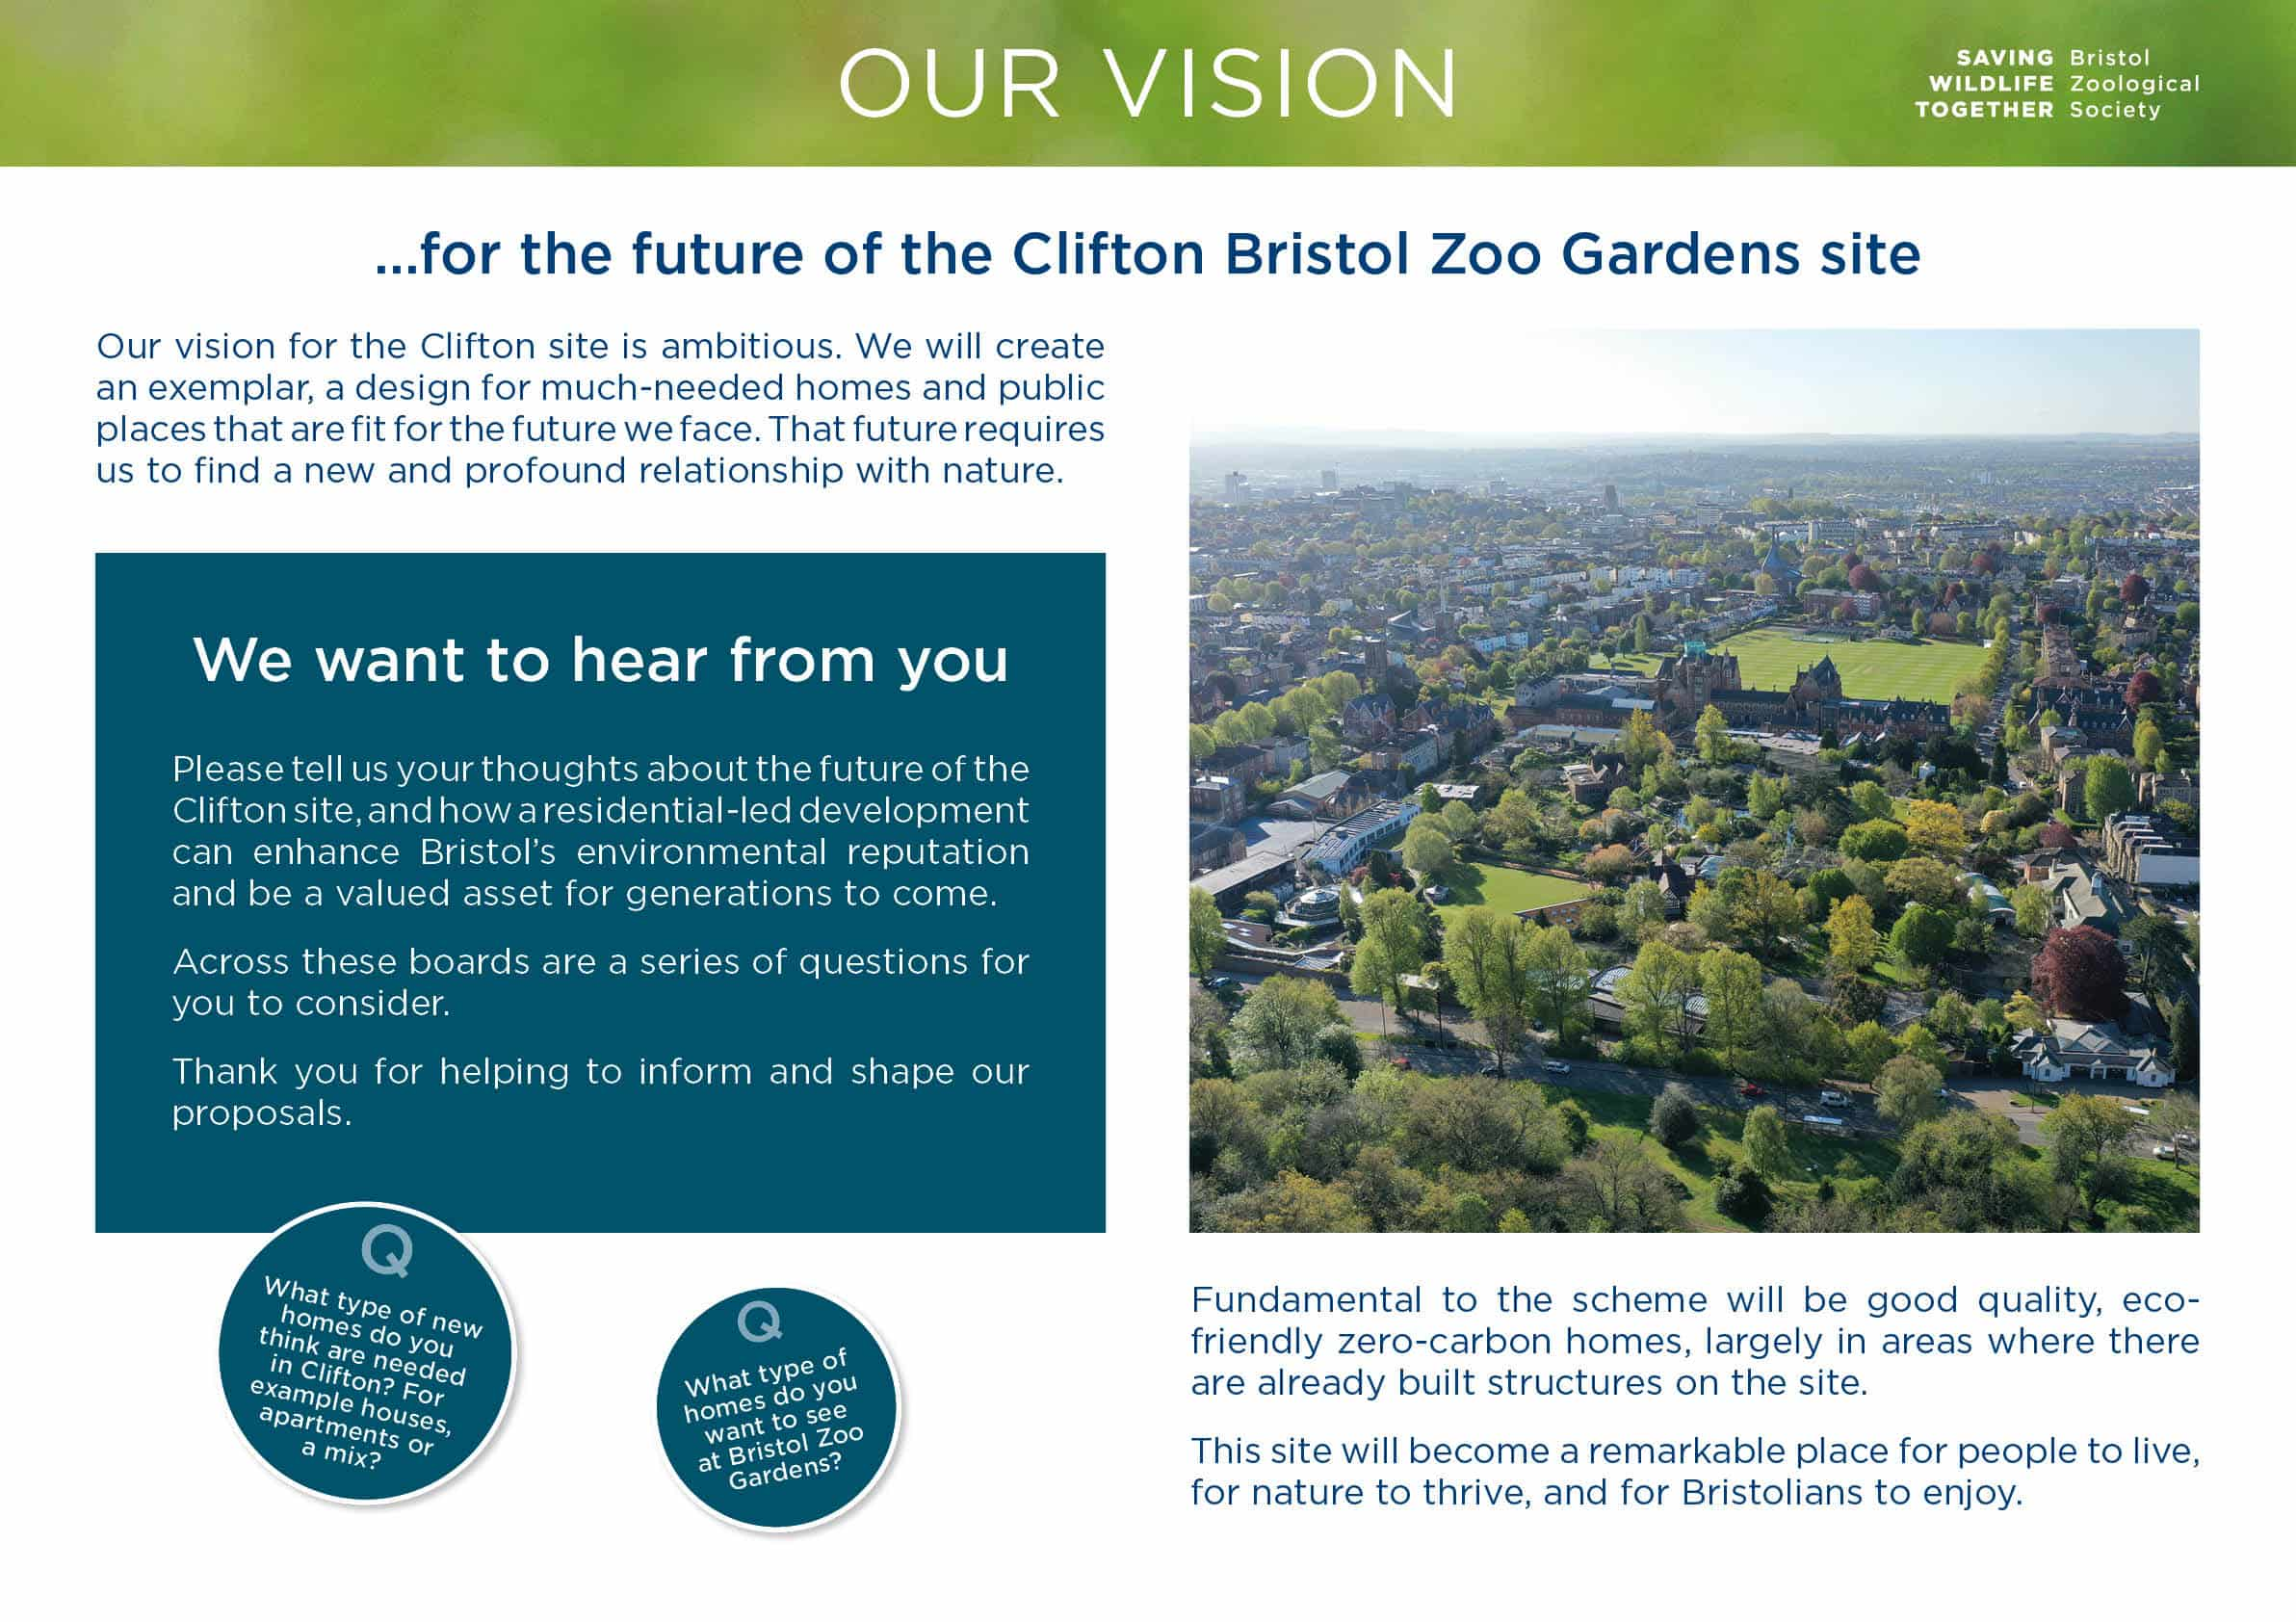 Moodboard with aerial view of Bristol Zoo Gardens and invitation to answer questions